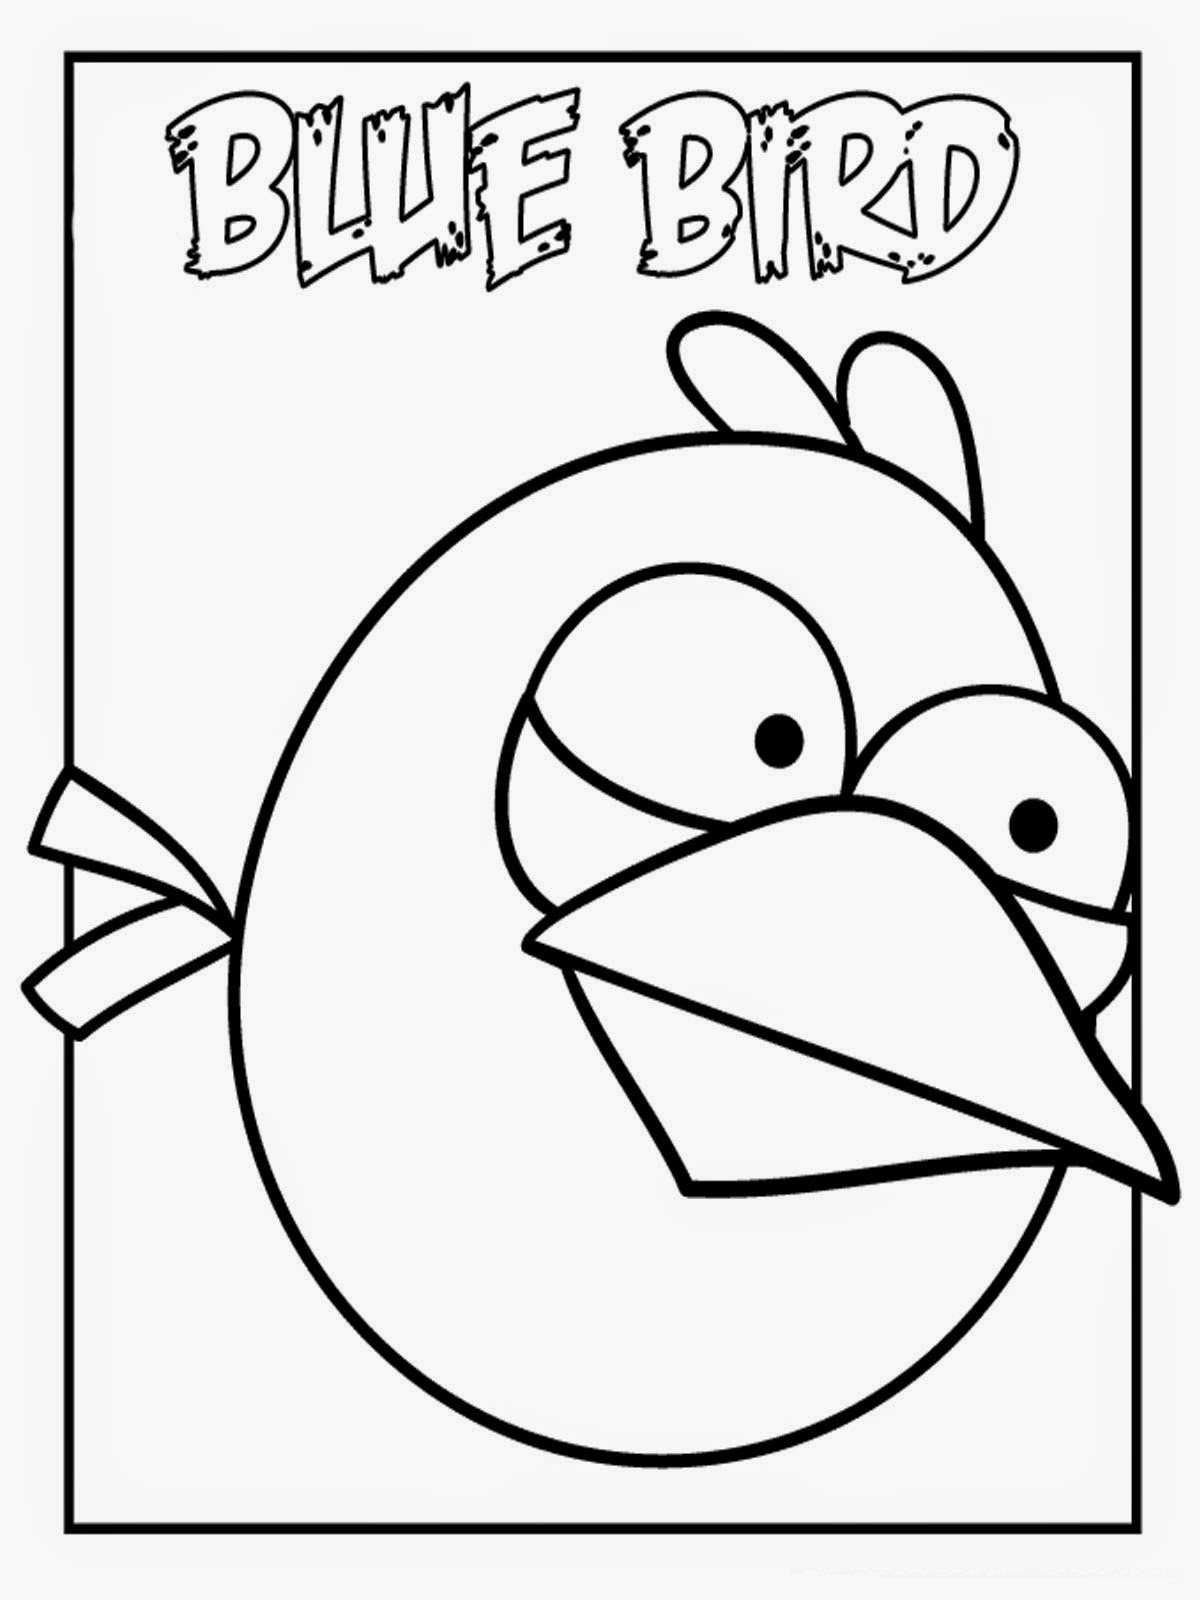 angry bird Blue Bird - HD Coloring Pages for Kids